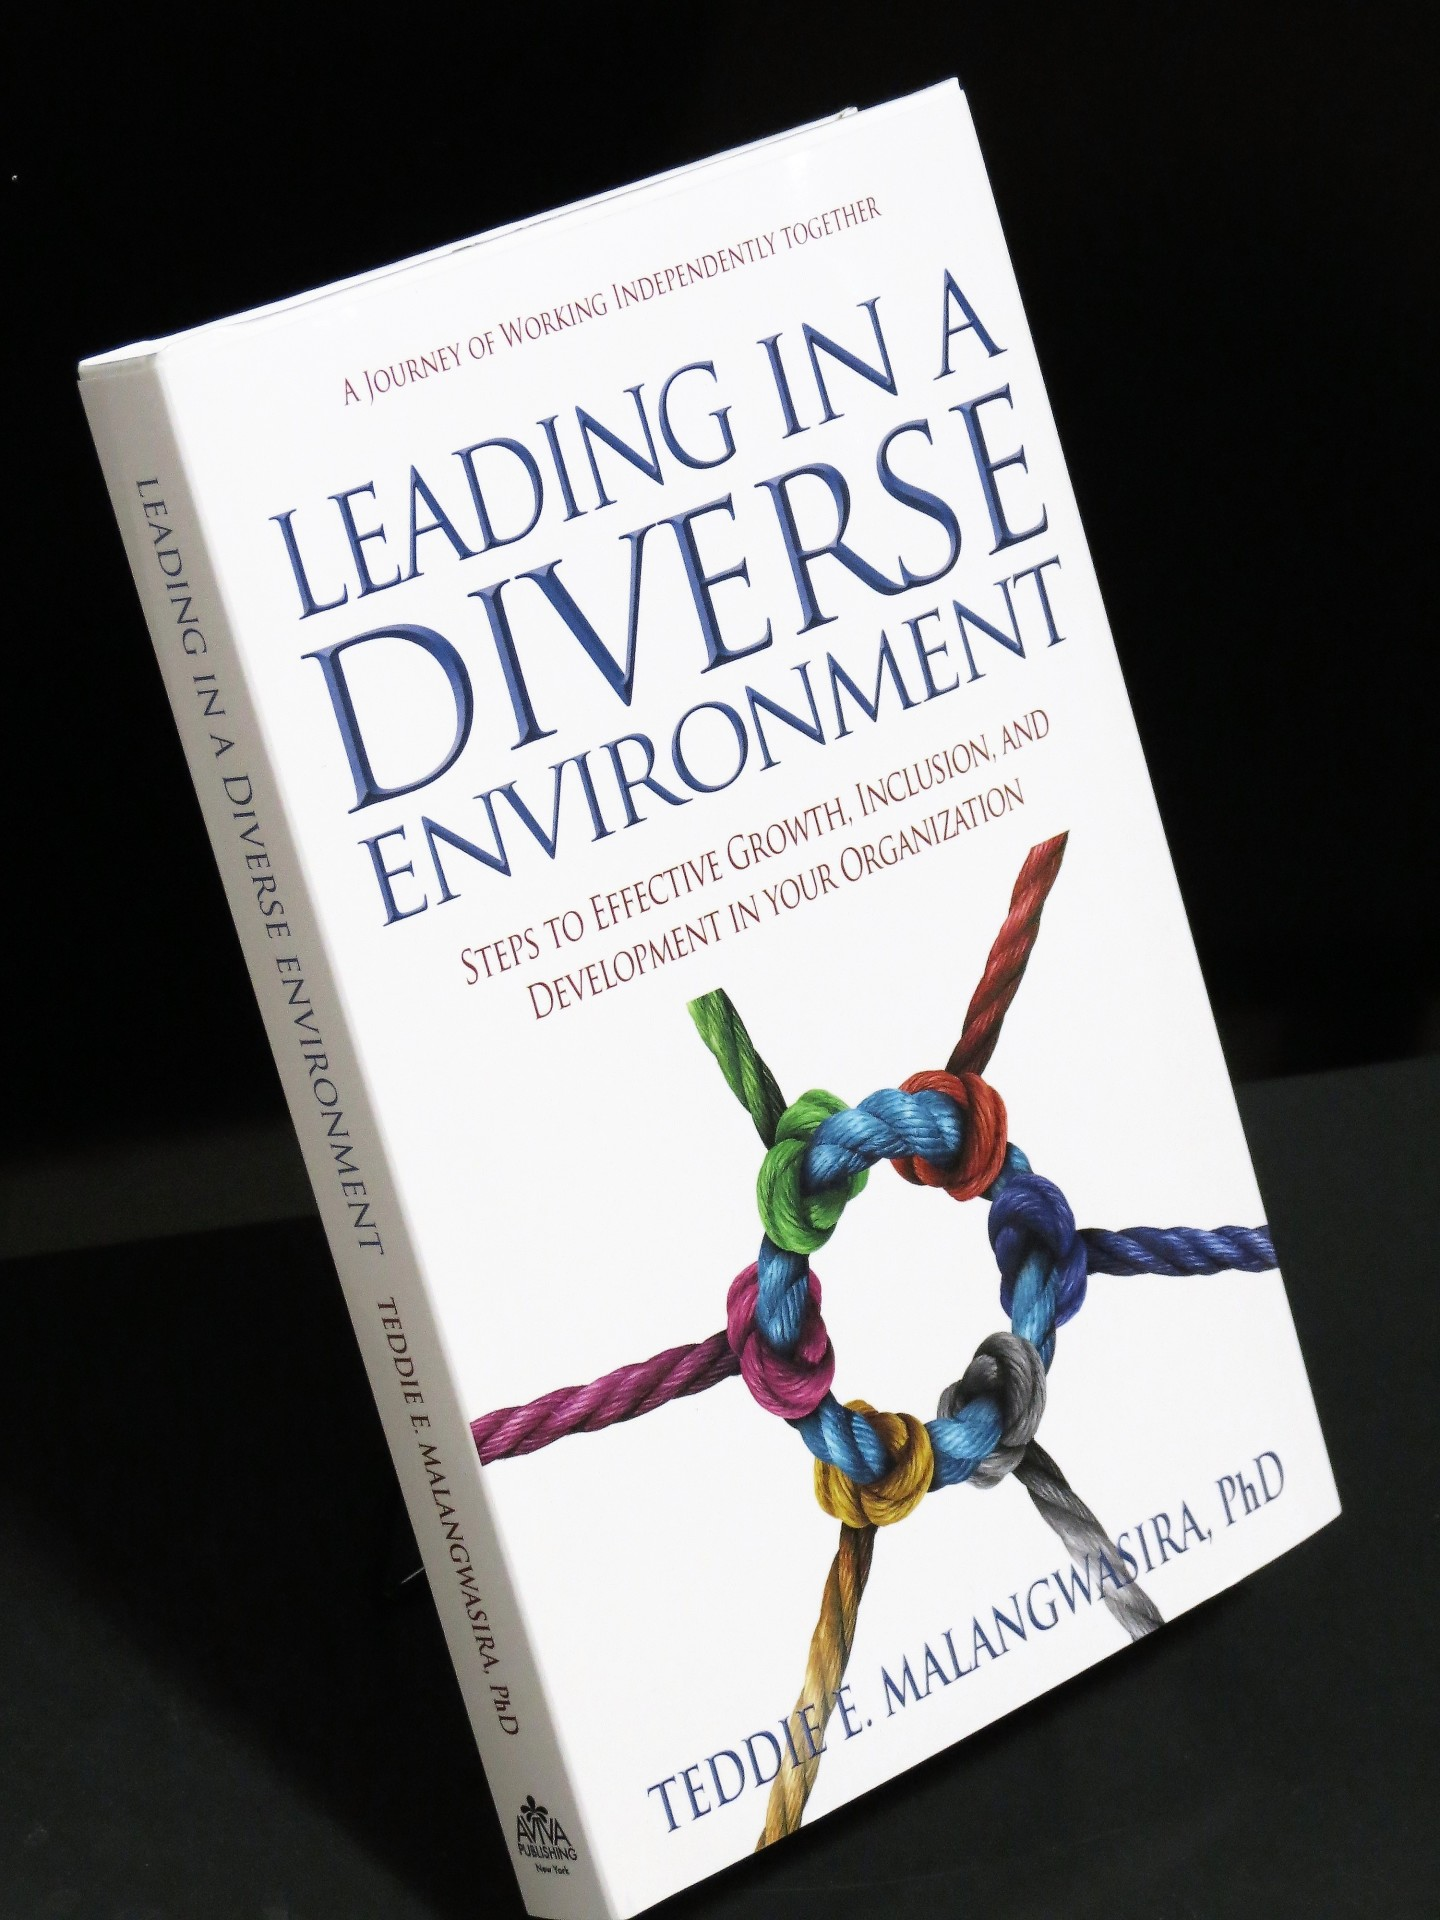 Leading In A Diverse Environment - Book Release